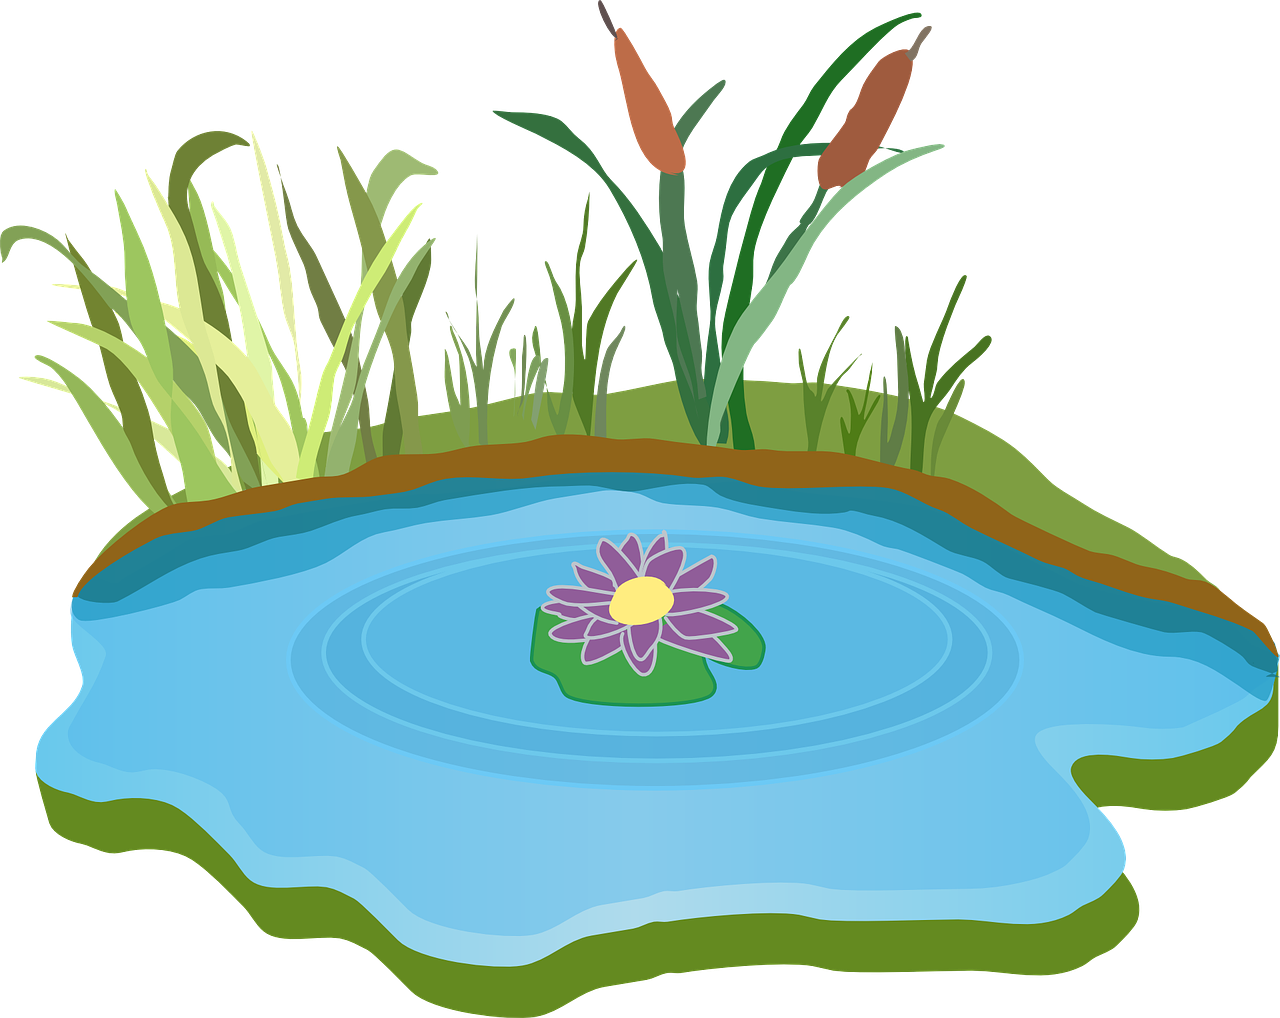 Pond water outdoor grass. Game clipart out door